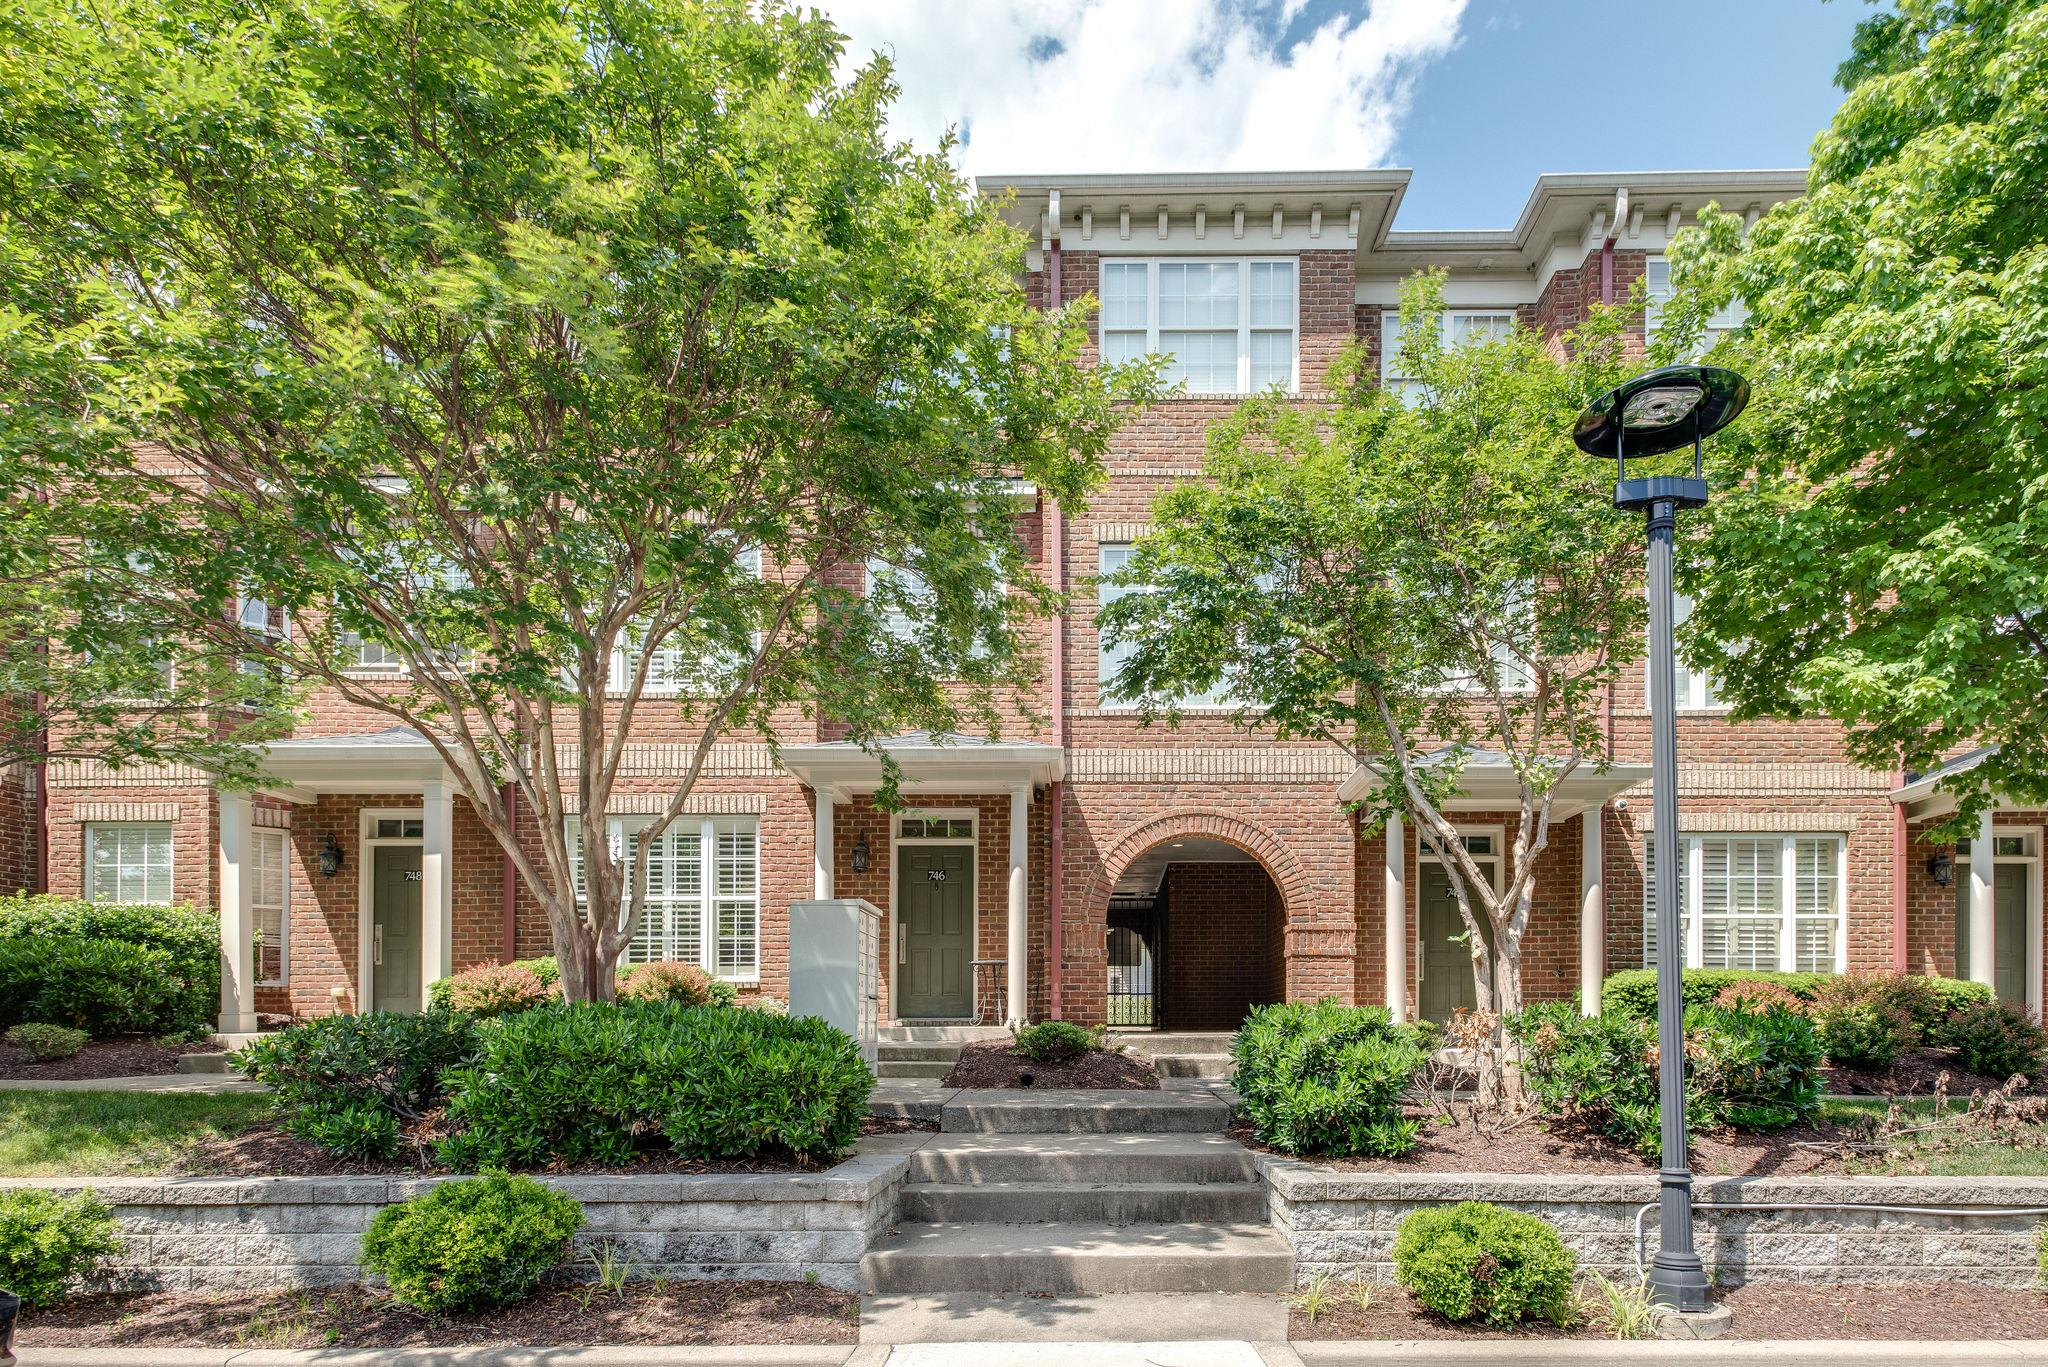 746 Wedgewood Park, Nashville - Midtown in Davidson County County, TN 37203 Home for Sale